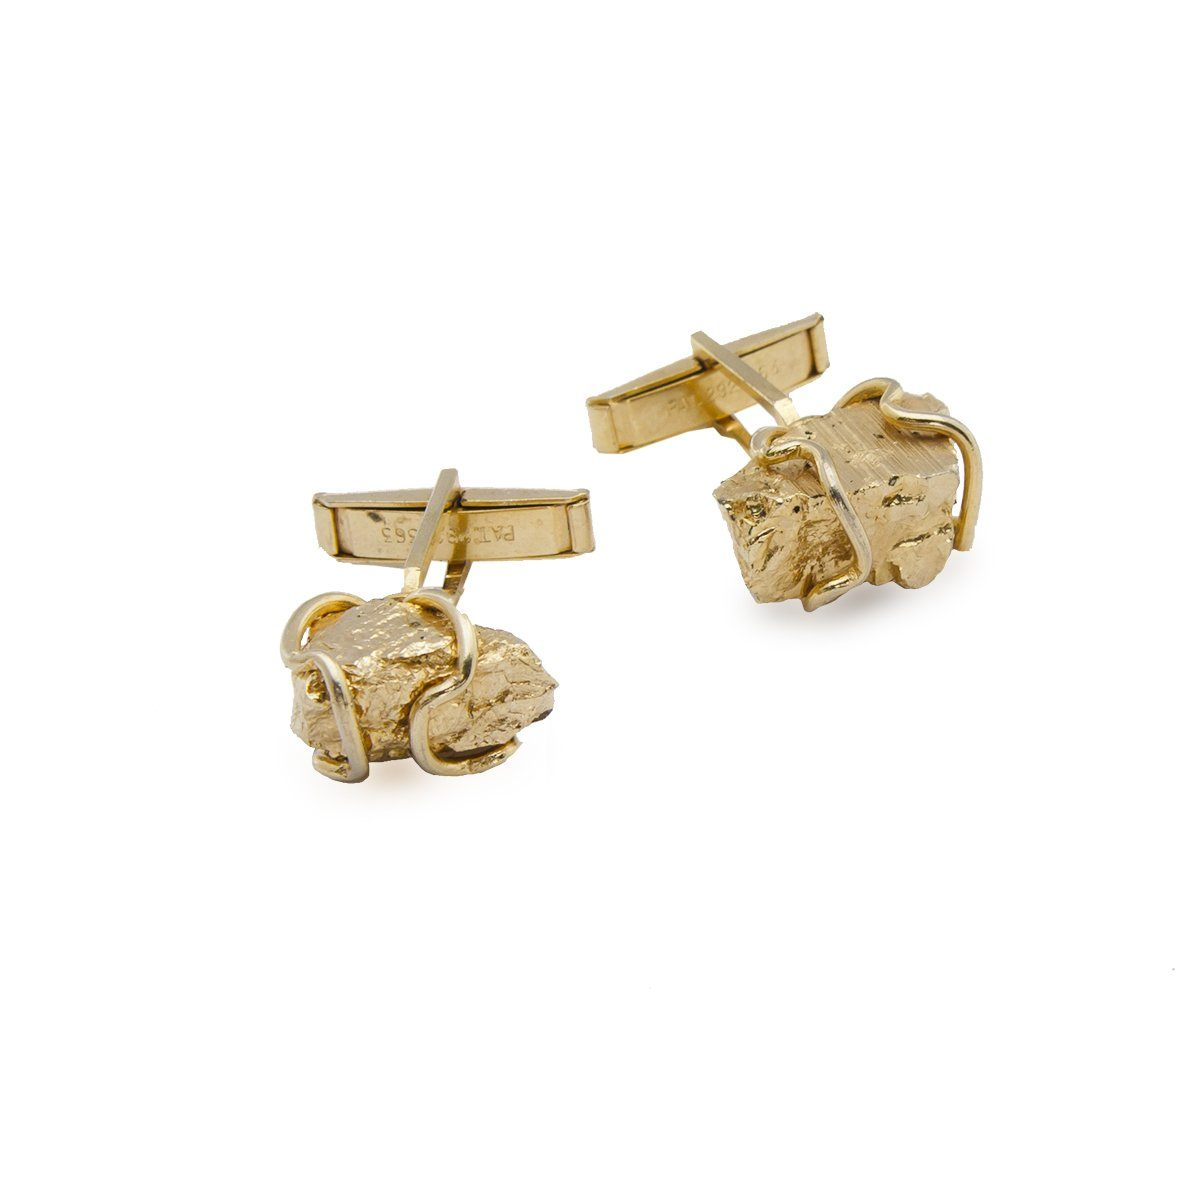 Harvey Avedon Gold Metal Nugget Cuff Links